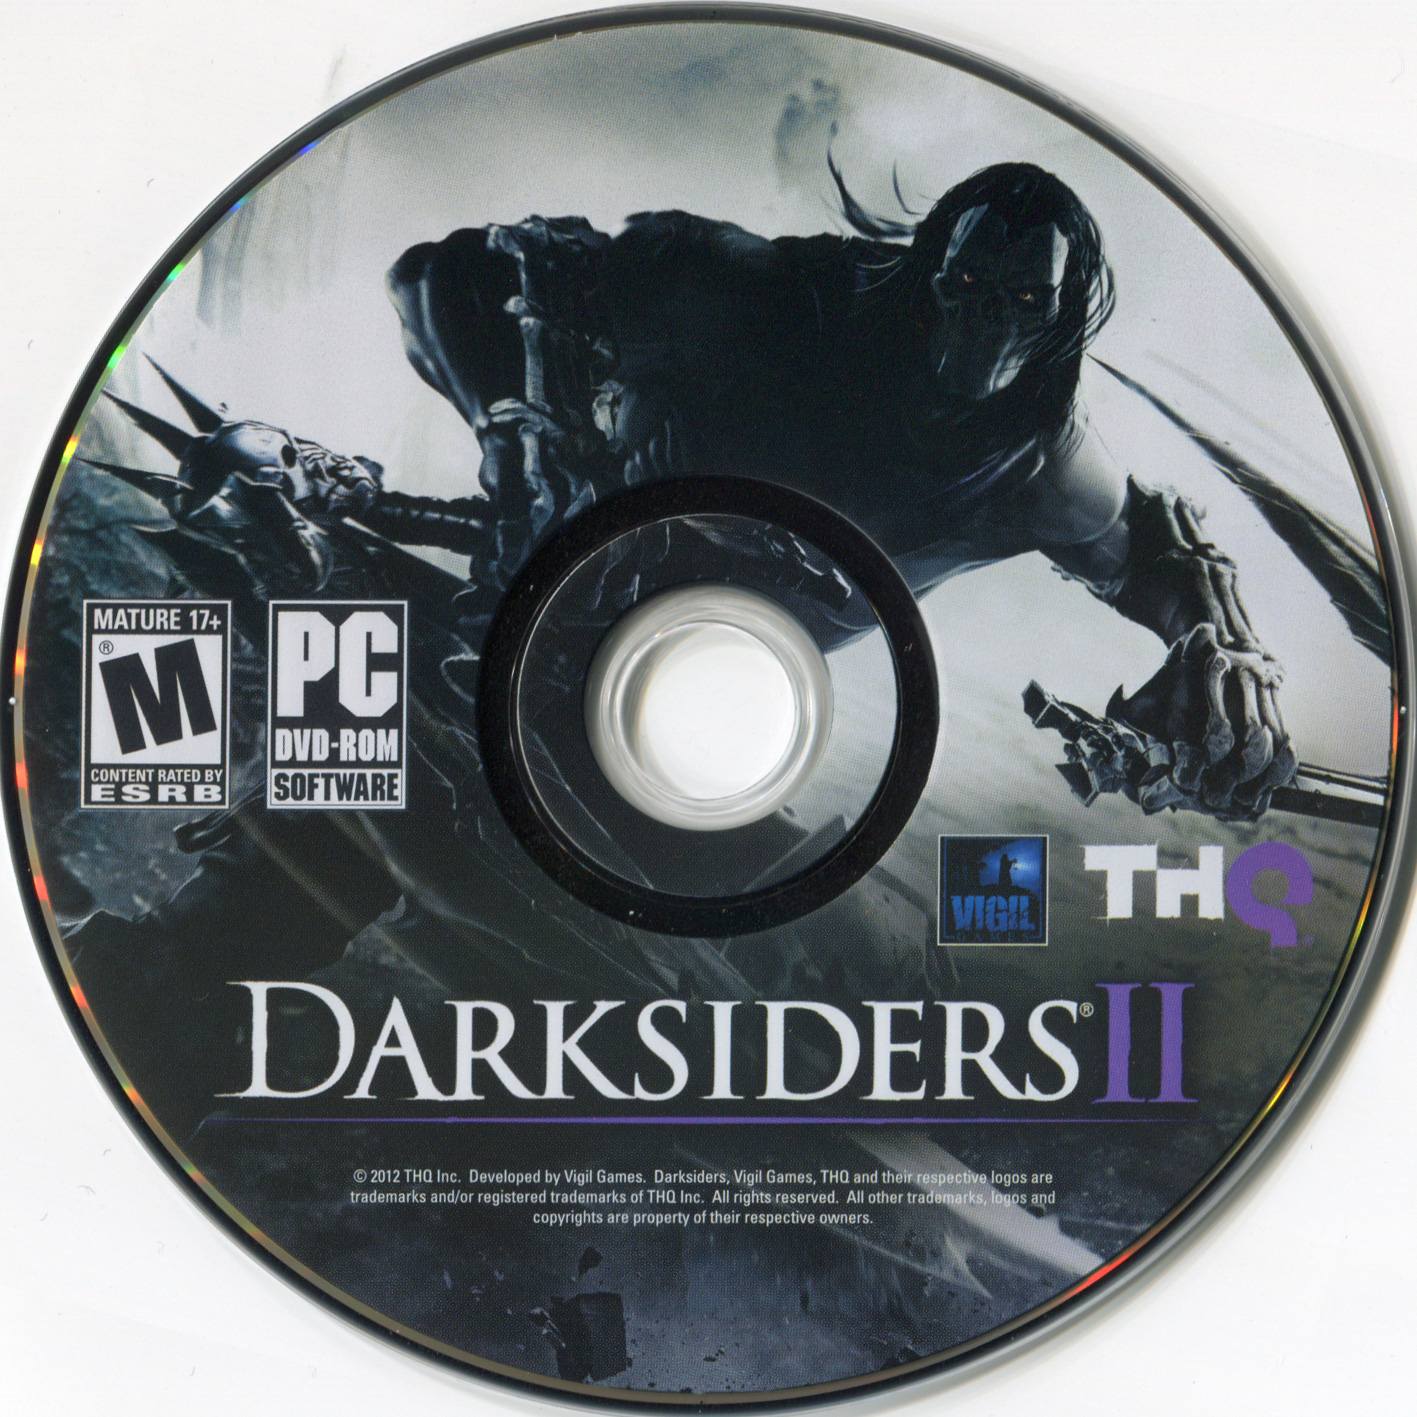 Free Download Darksiders 2 Games Full Version For PS3, PS4, PSP